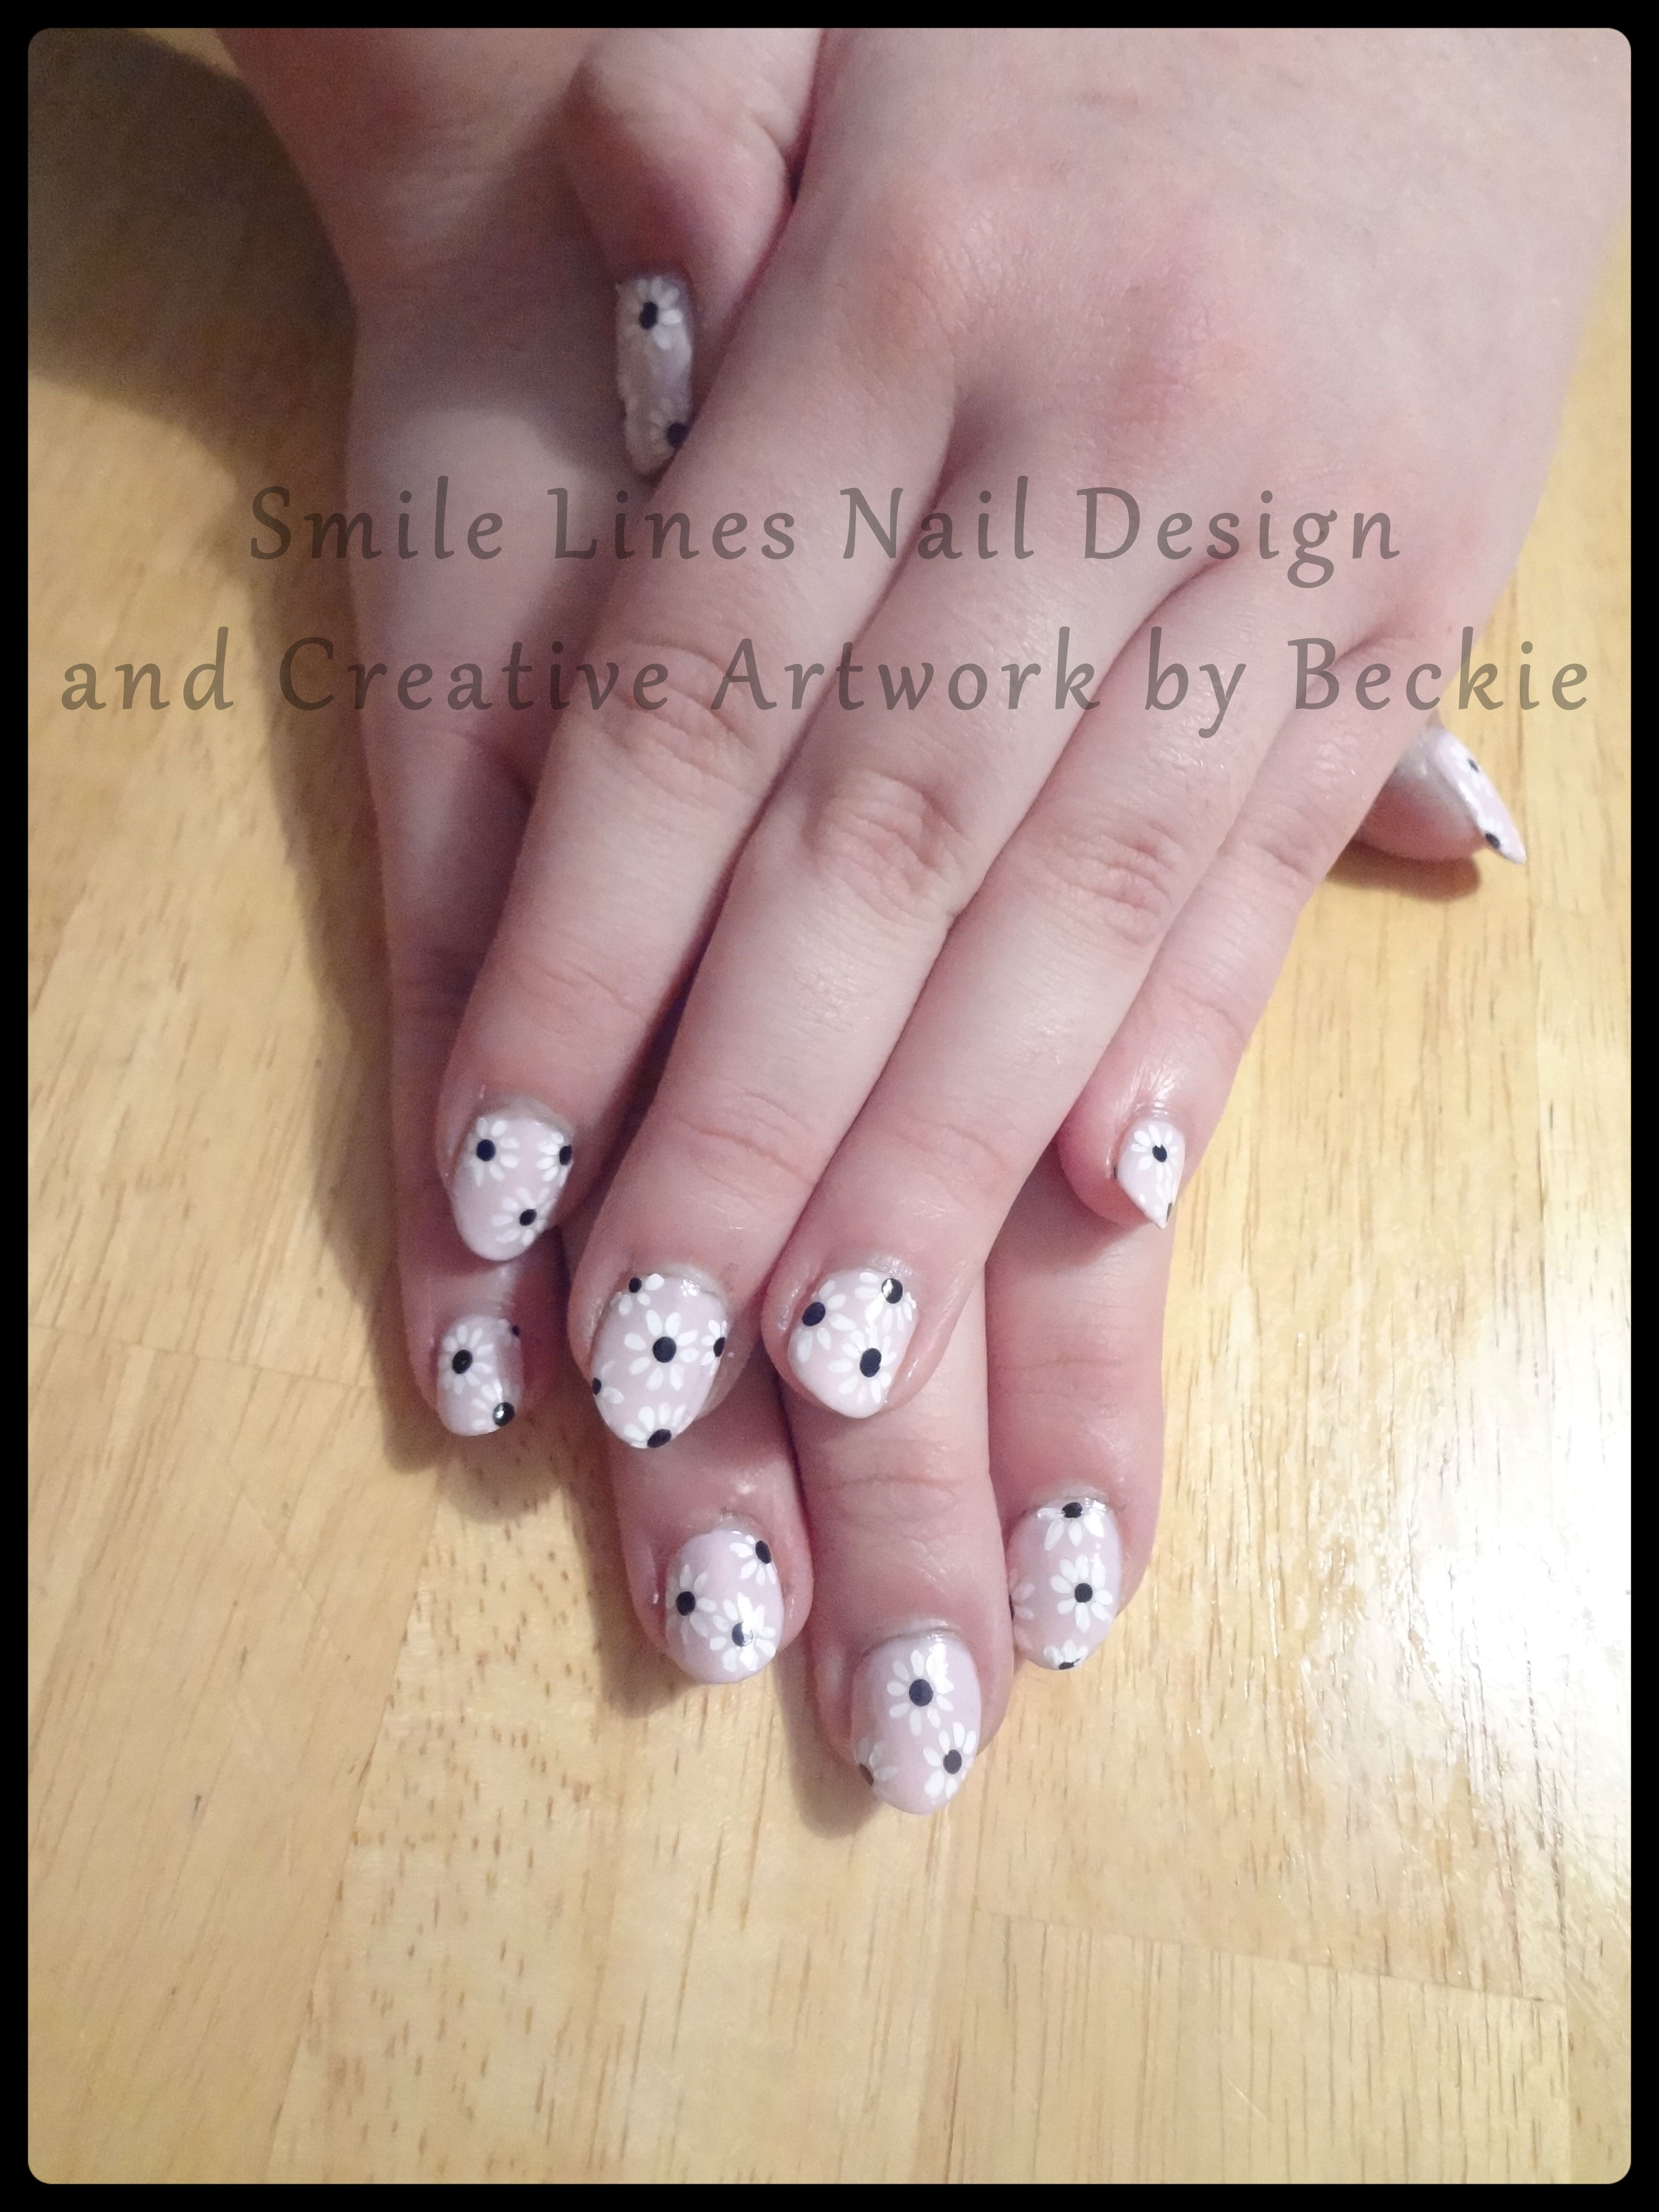 Dainty Daisy Nail Art | Nail Art | Pinterest | Daisy nail art and ...